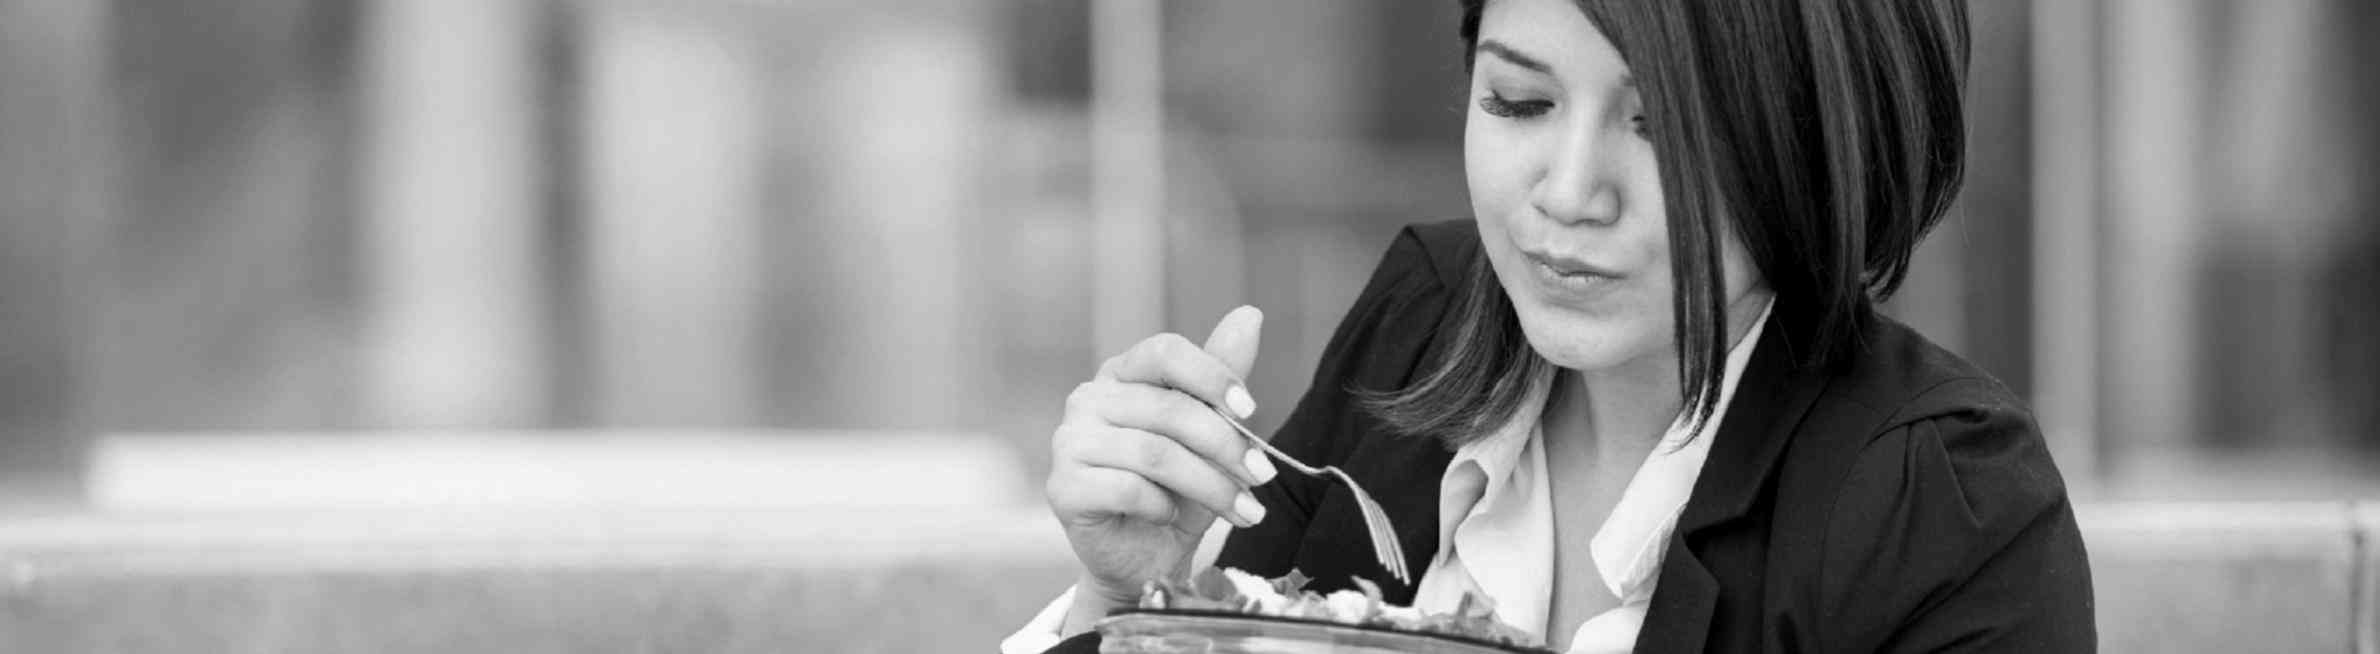 Woman eating to manage her stress after attending Workplace Learning Solutions eating plan for stress management webinar